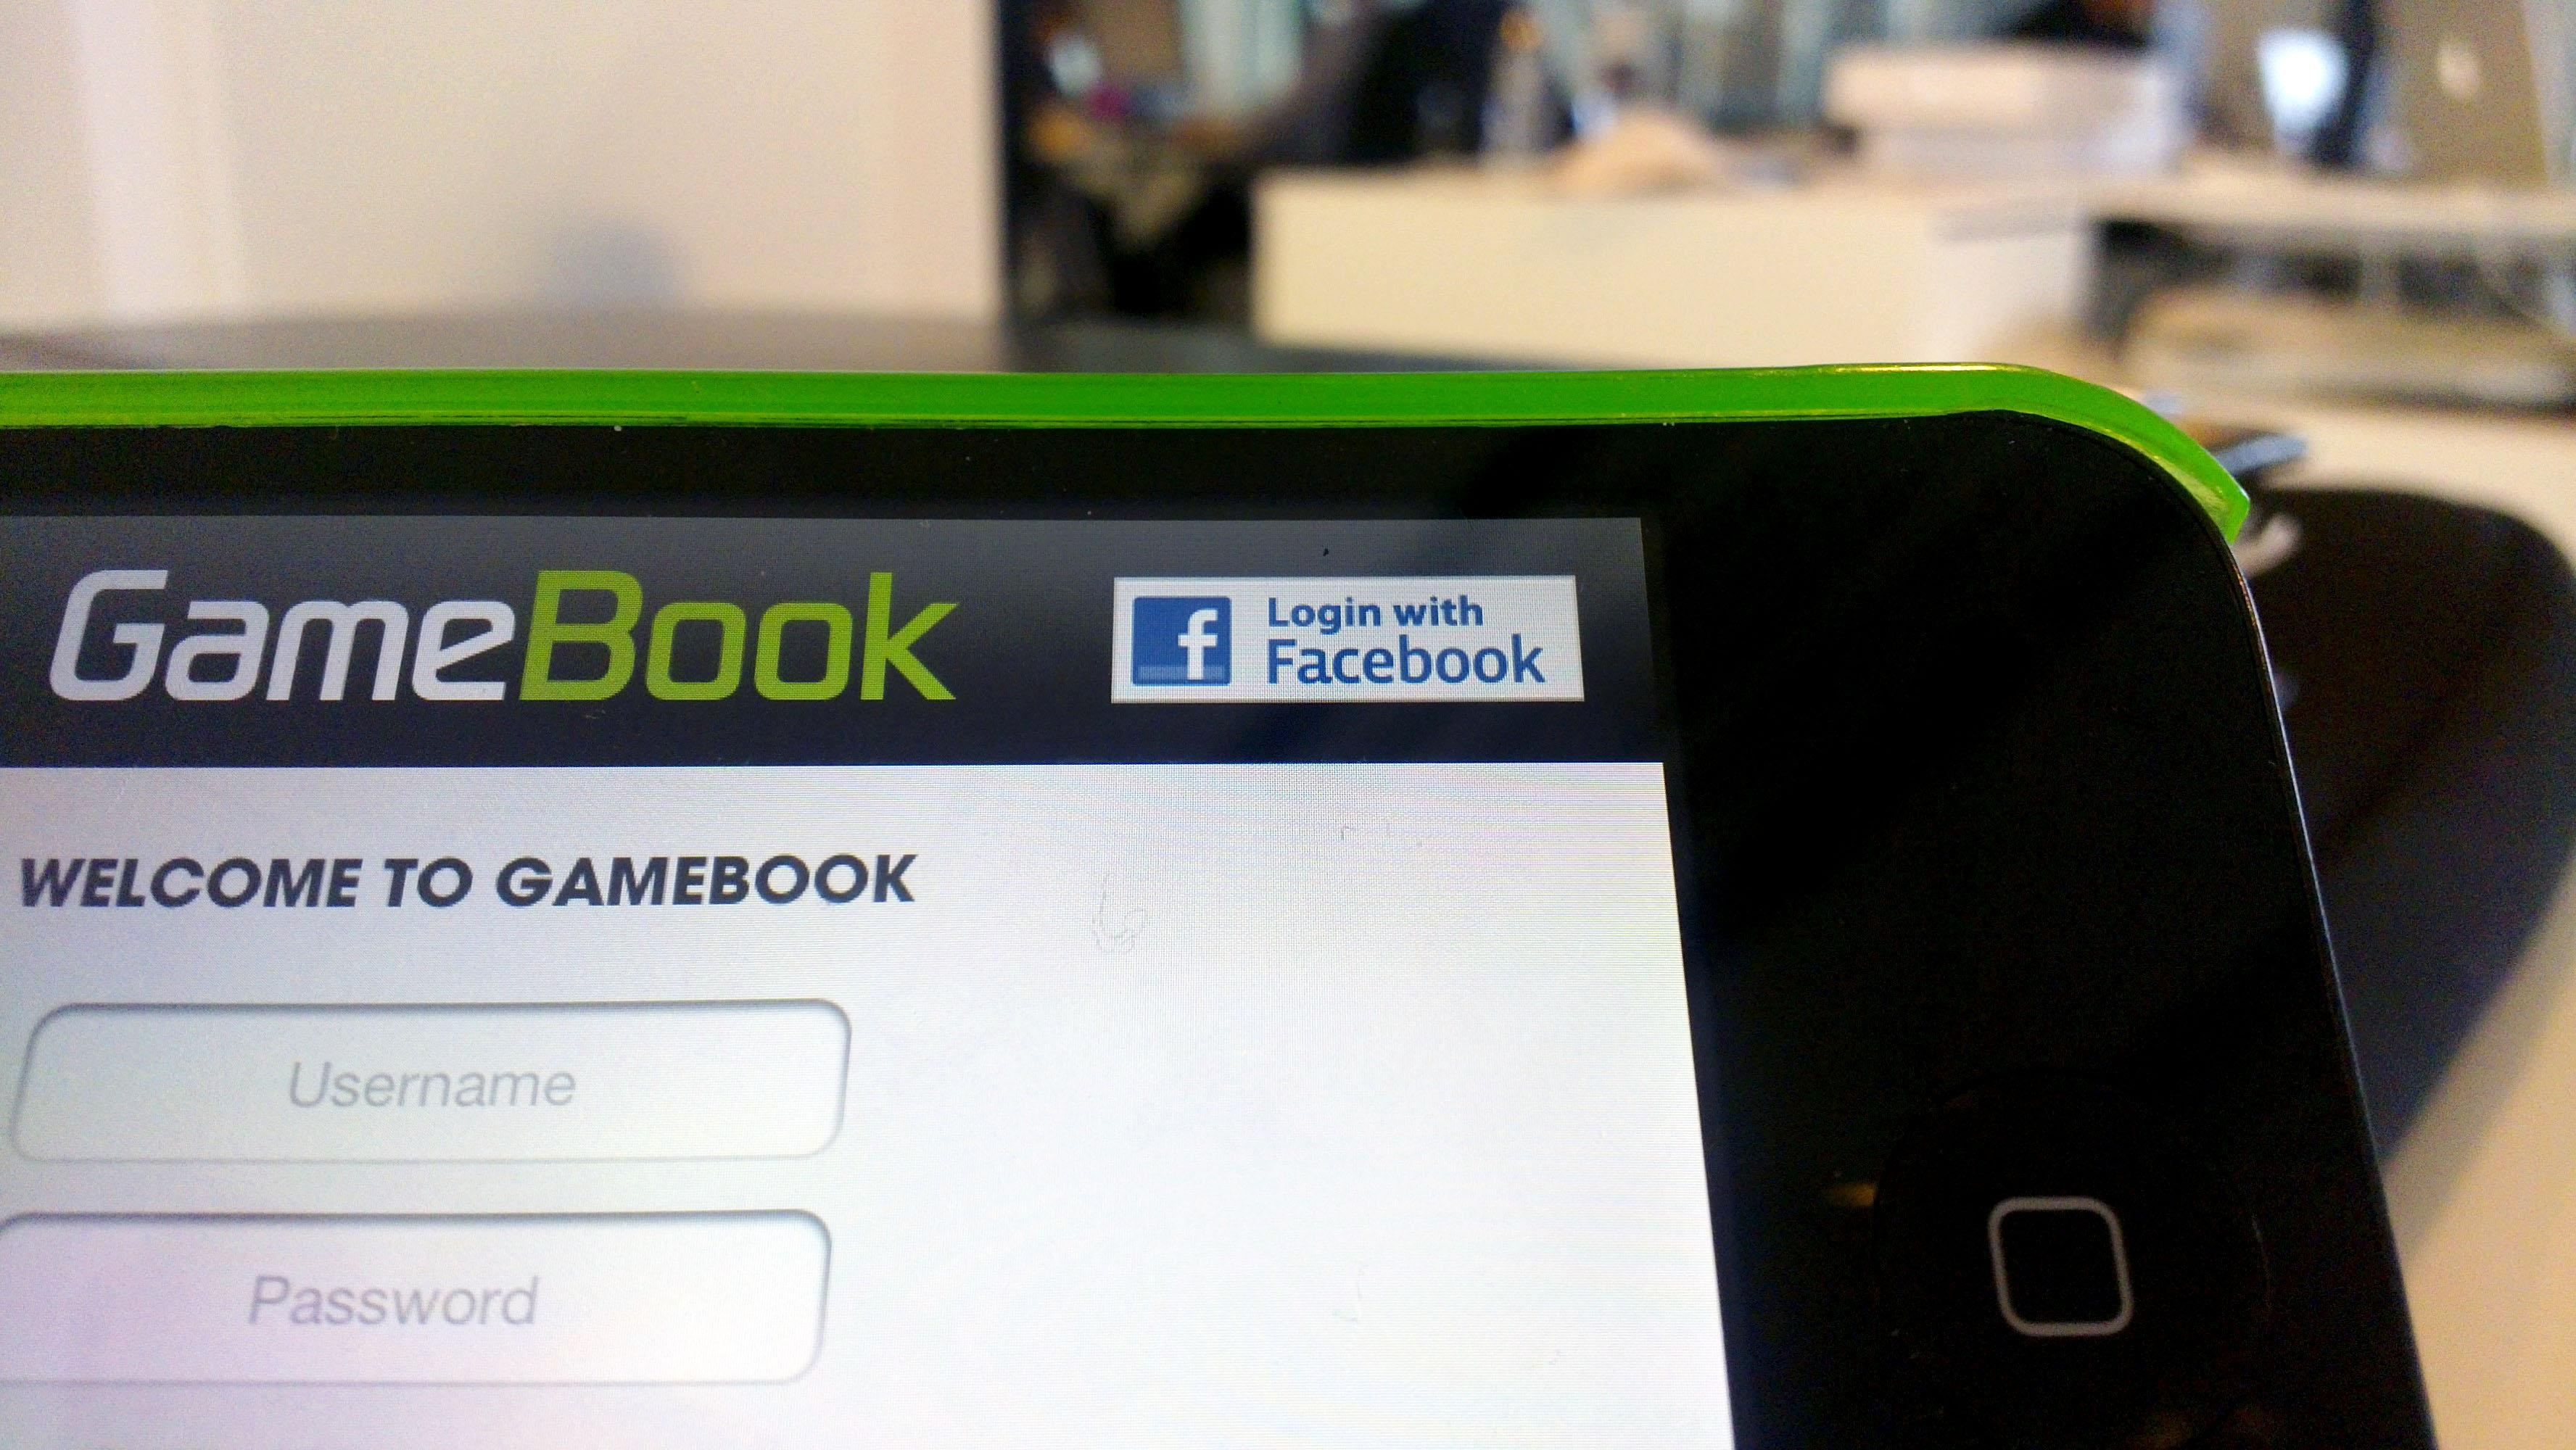 When using the GameBook app you also have the opportunity to login with Facebook.